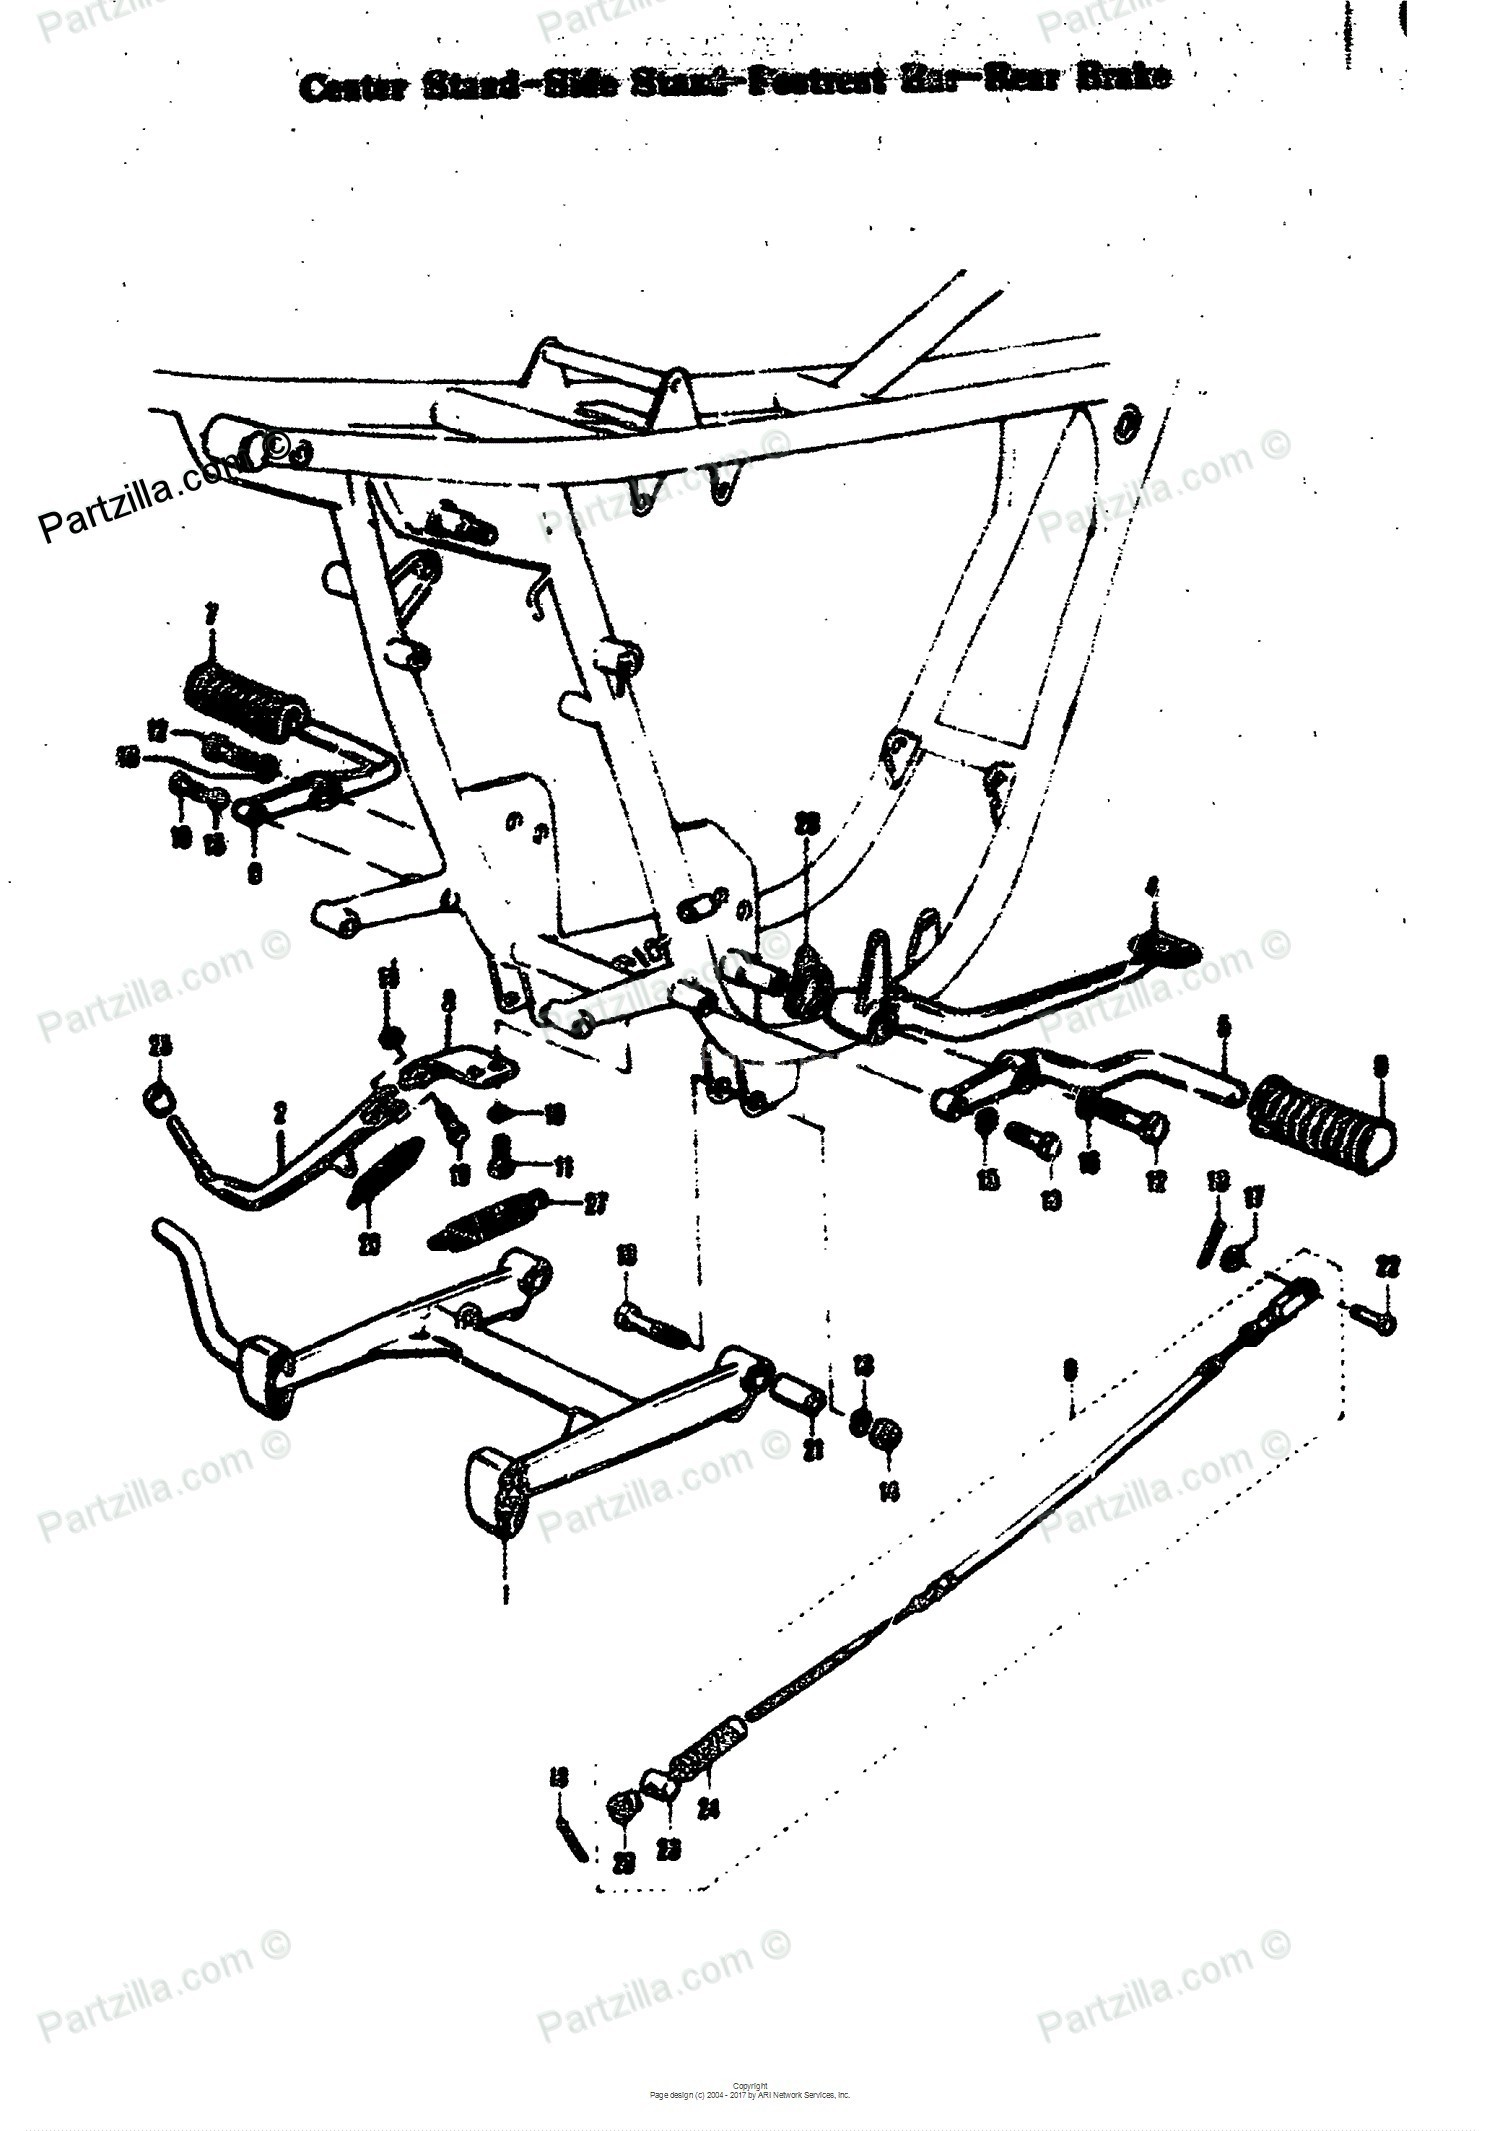 drum brakes diagram ford ranger image rear brake assembly